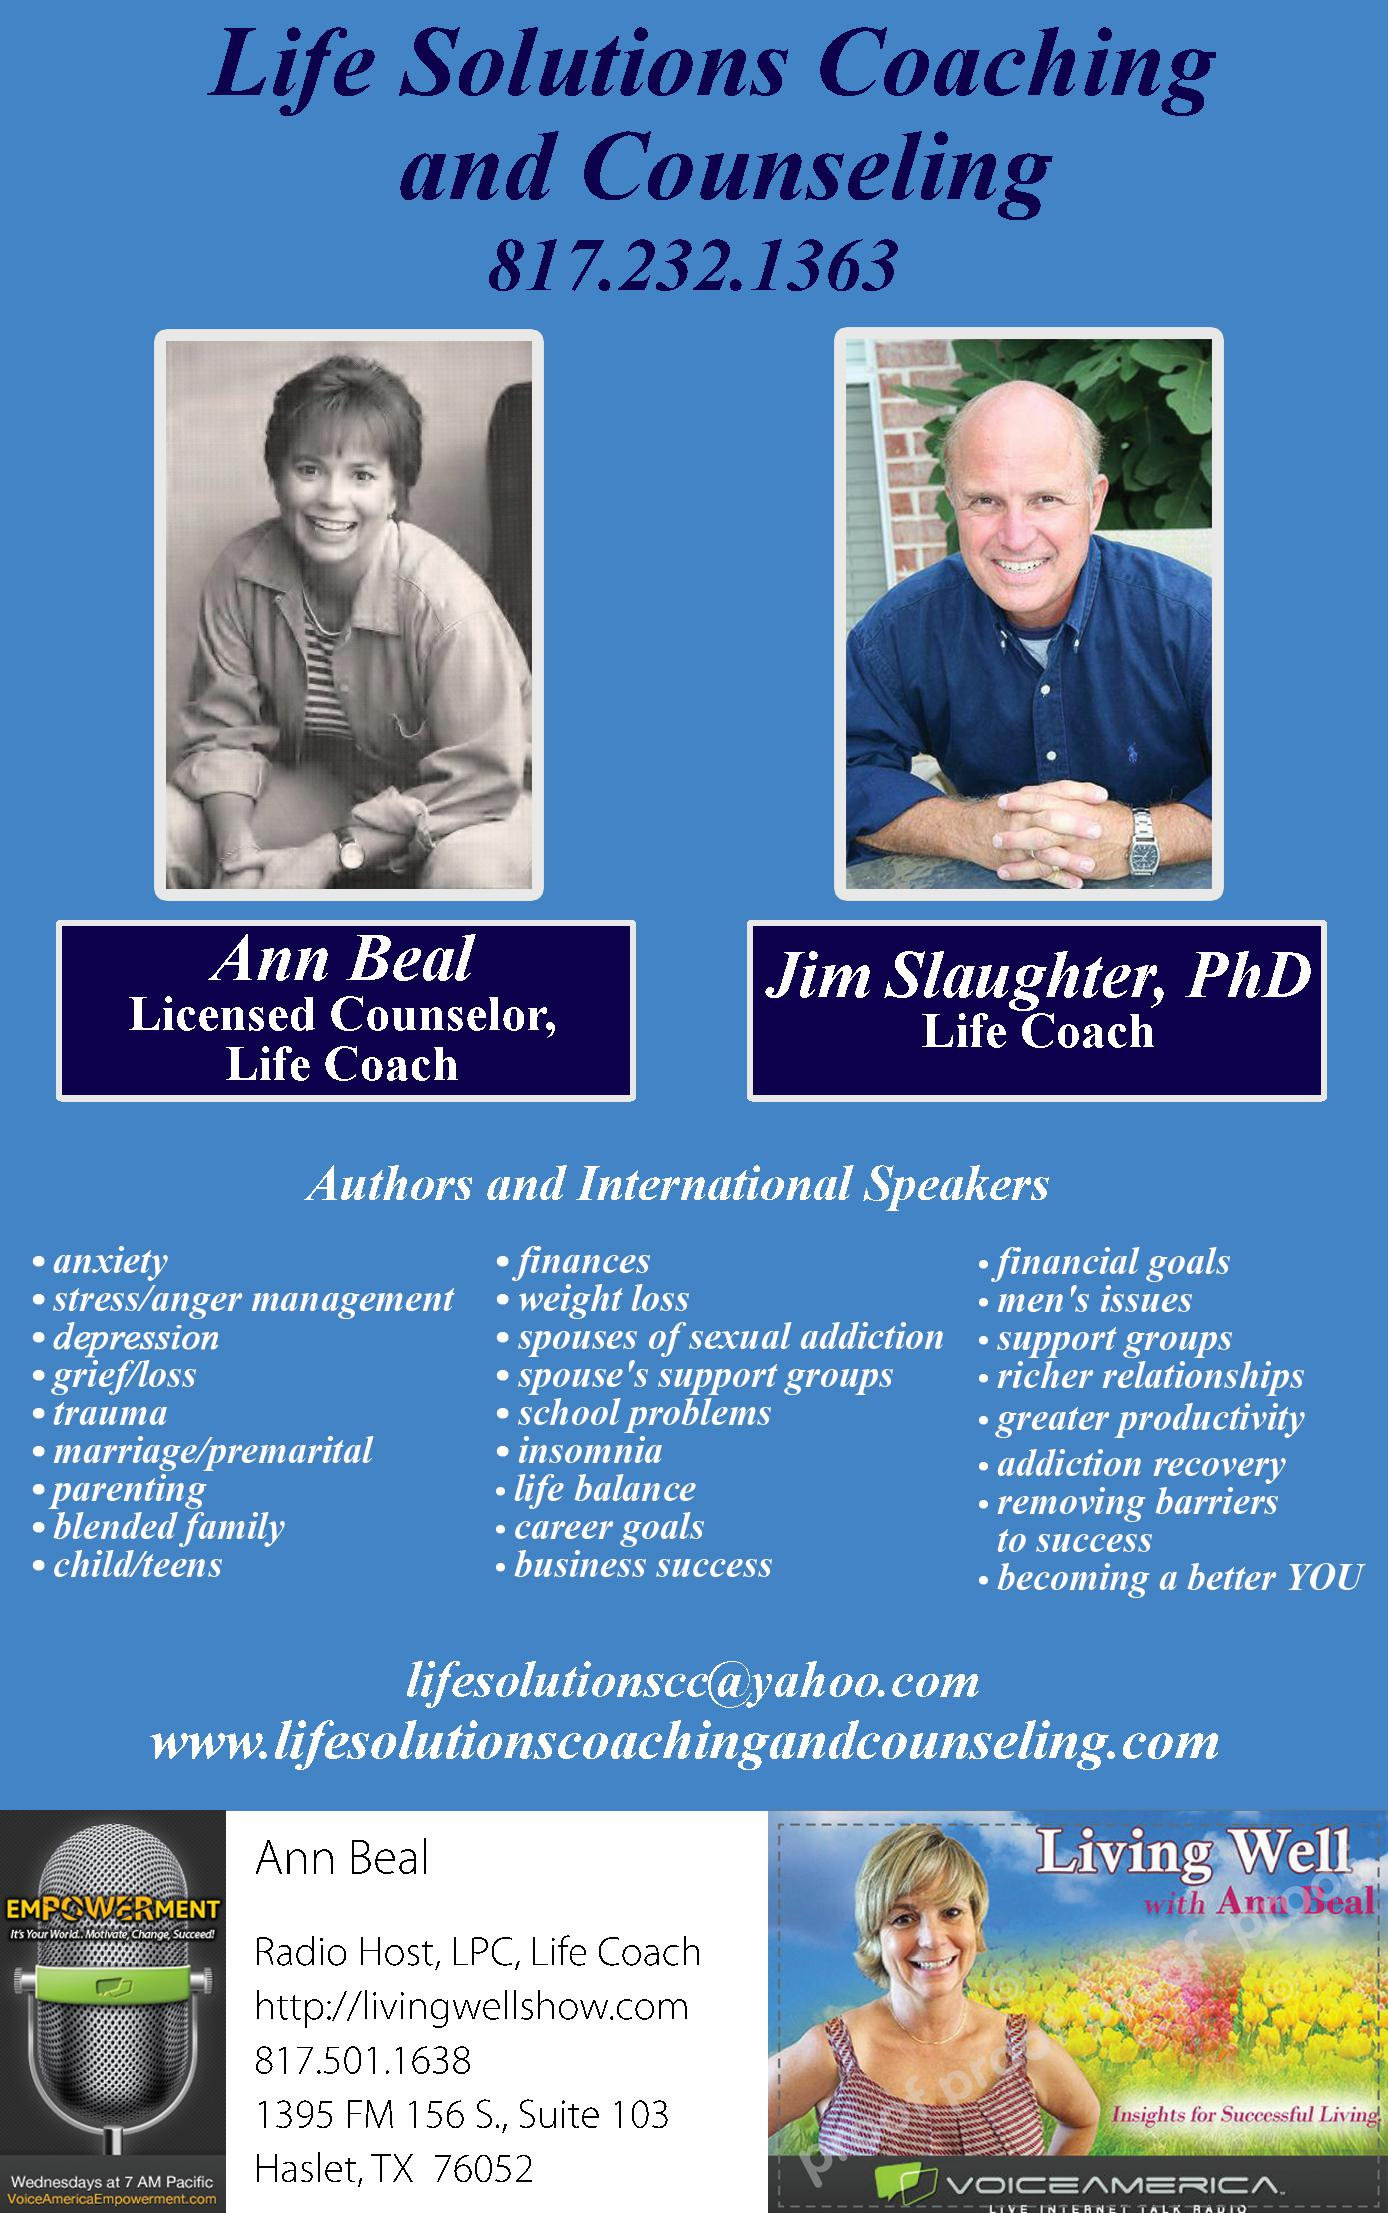 Life Solutions Coaching and Counseling